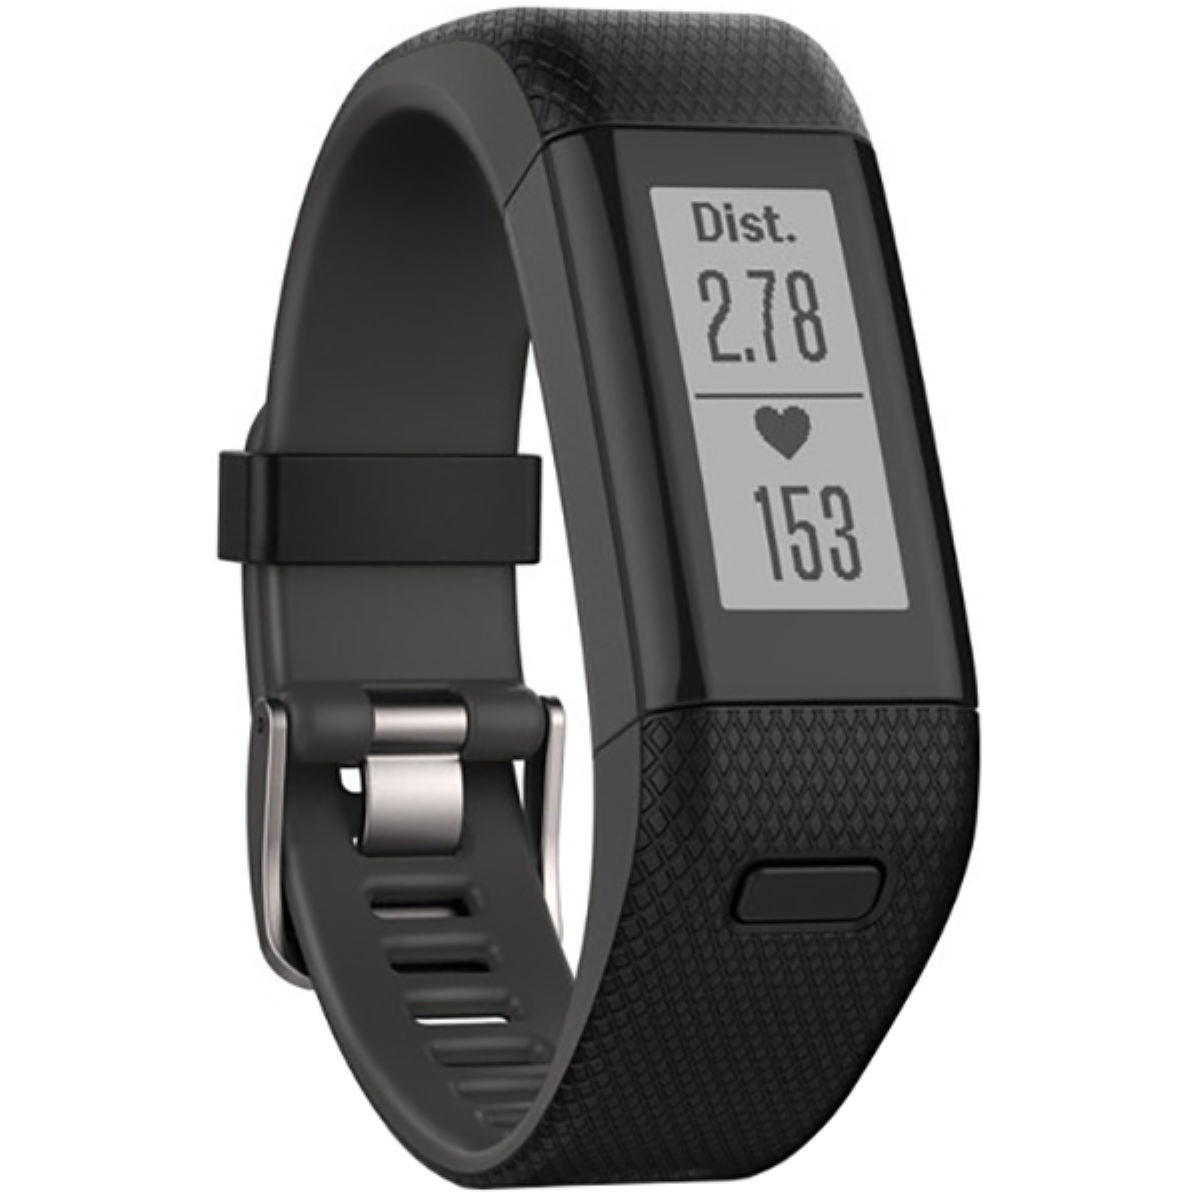 Garmin Garmin Vivosmart HR+ GPS Activity Fitness Tracker   Wearable Tech